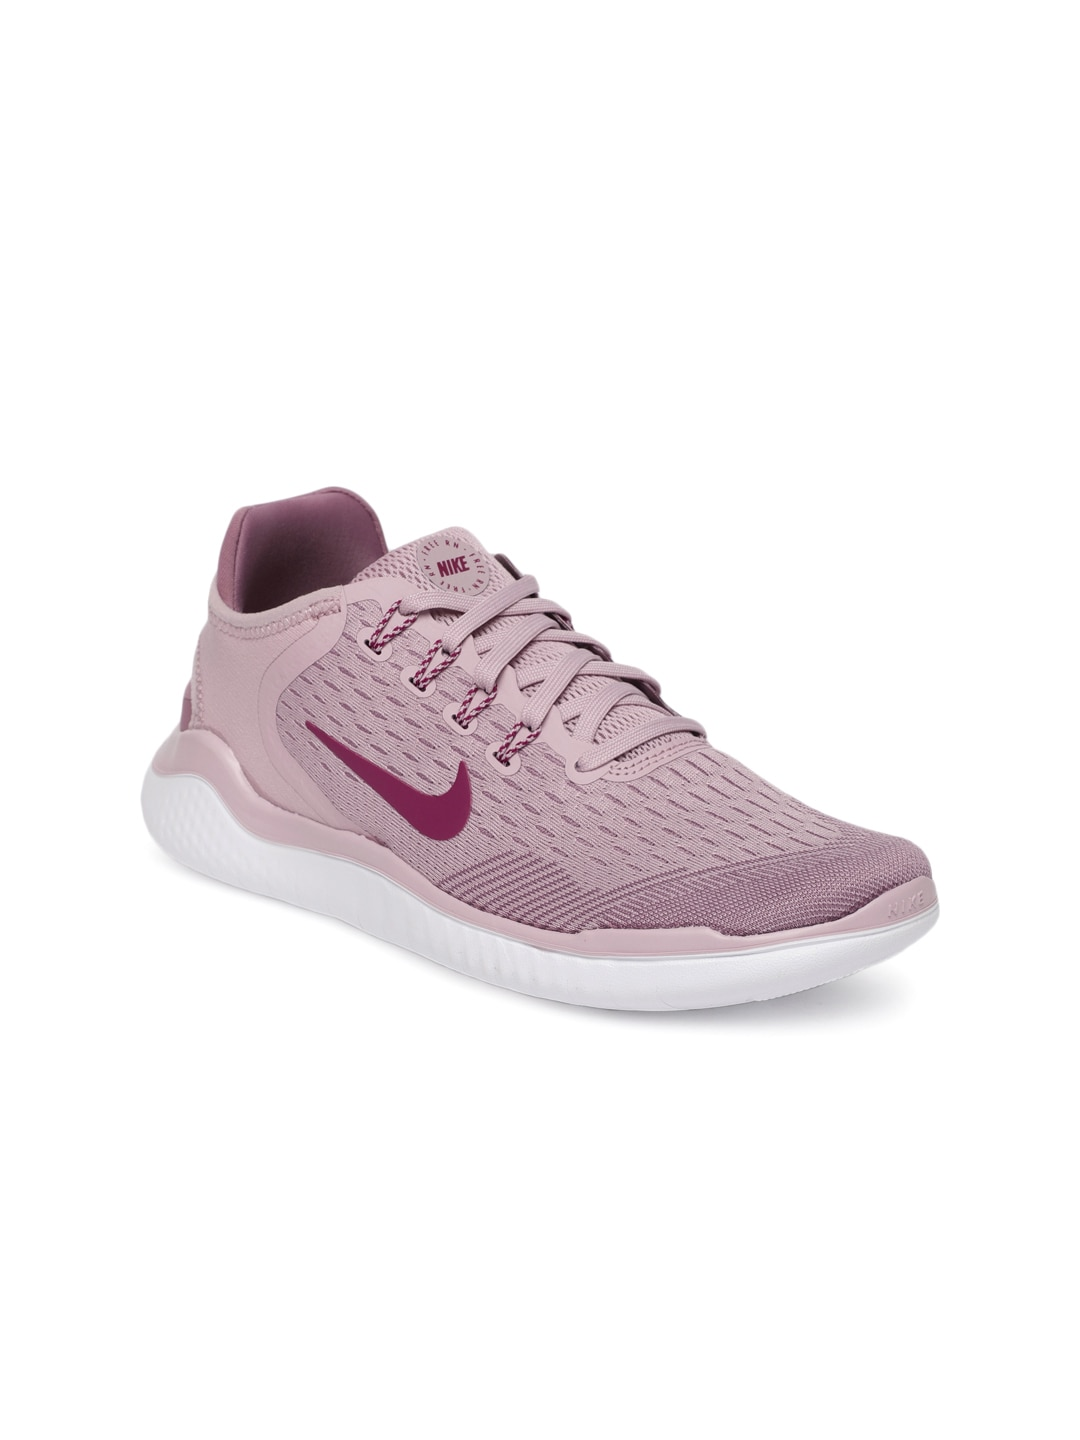 35409614d4416 Nike Running Shoes - Buy Nike Running Shoes Online